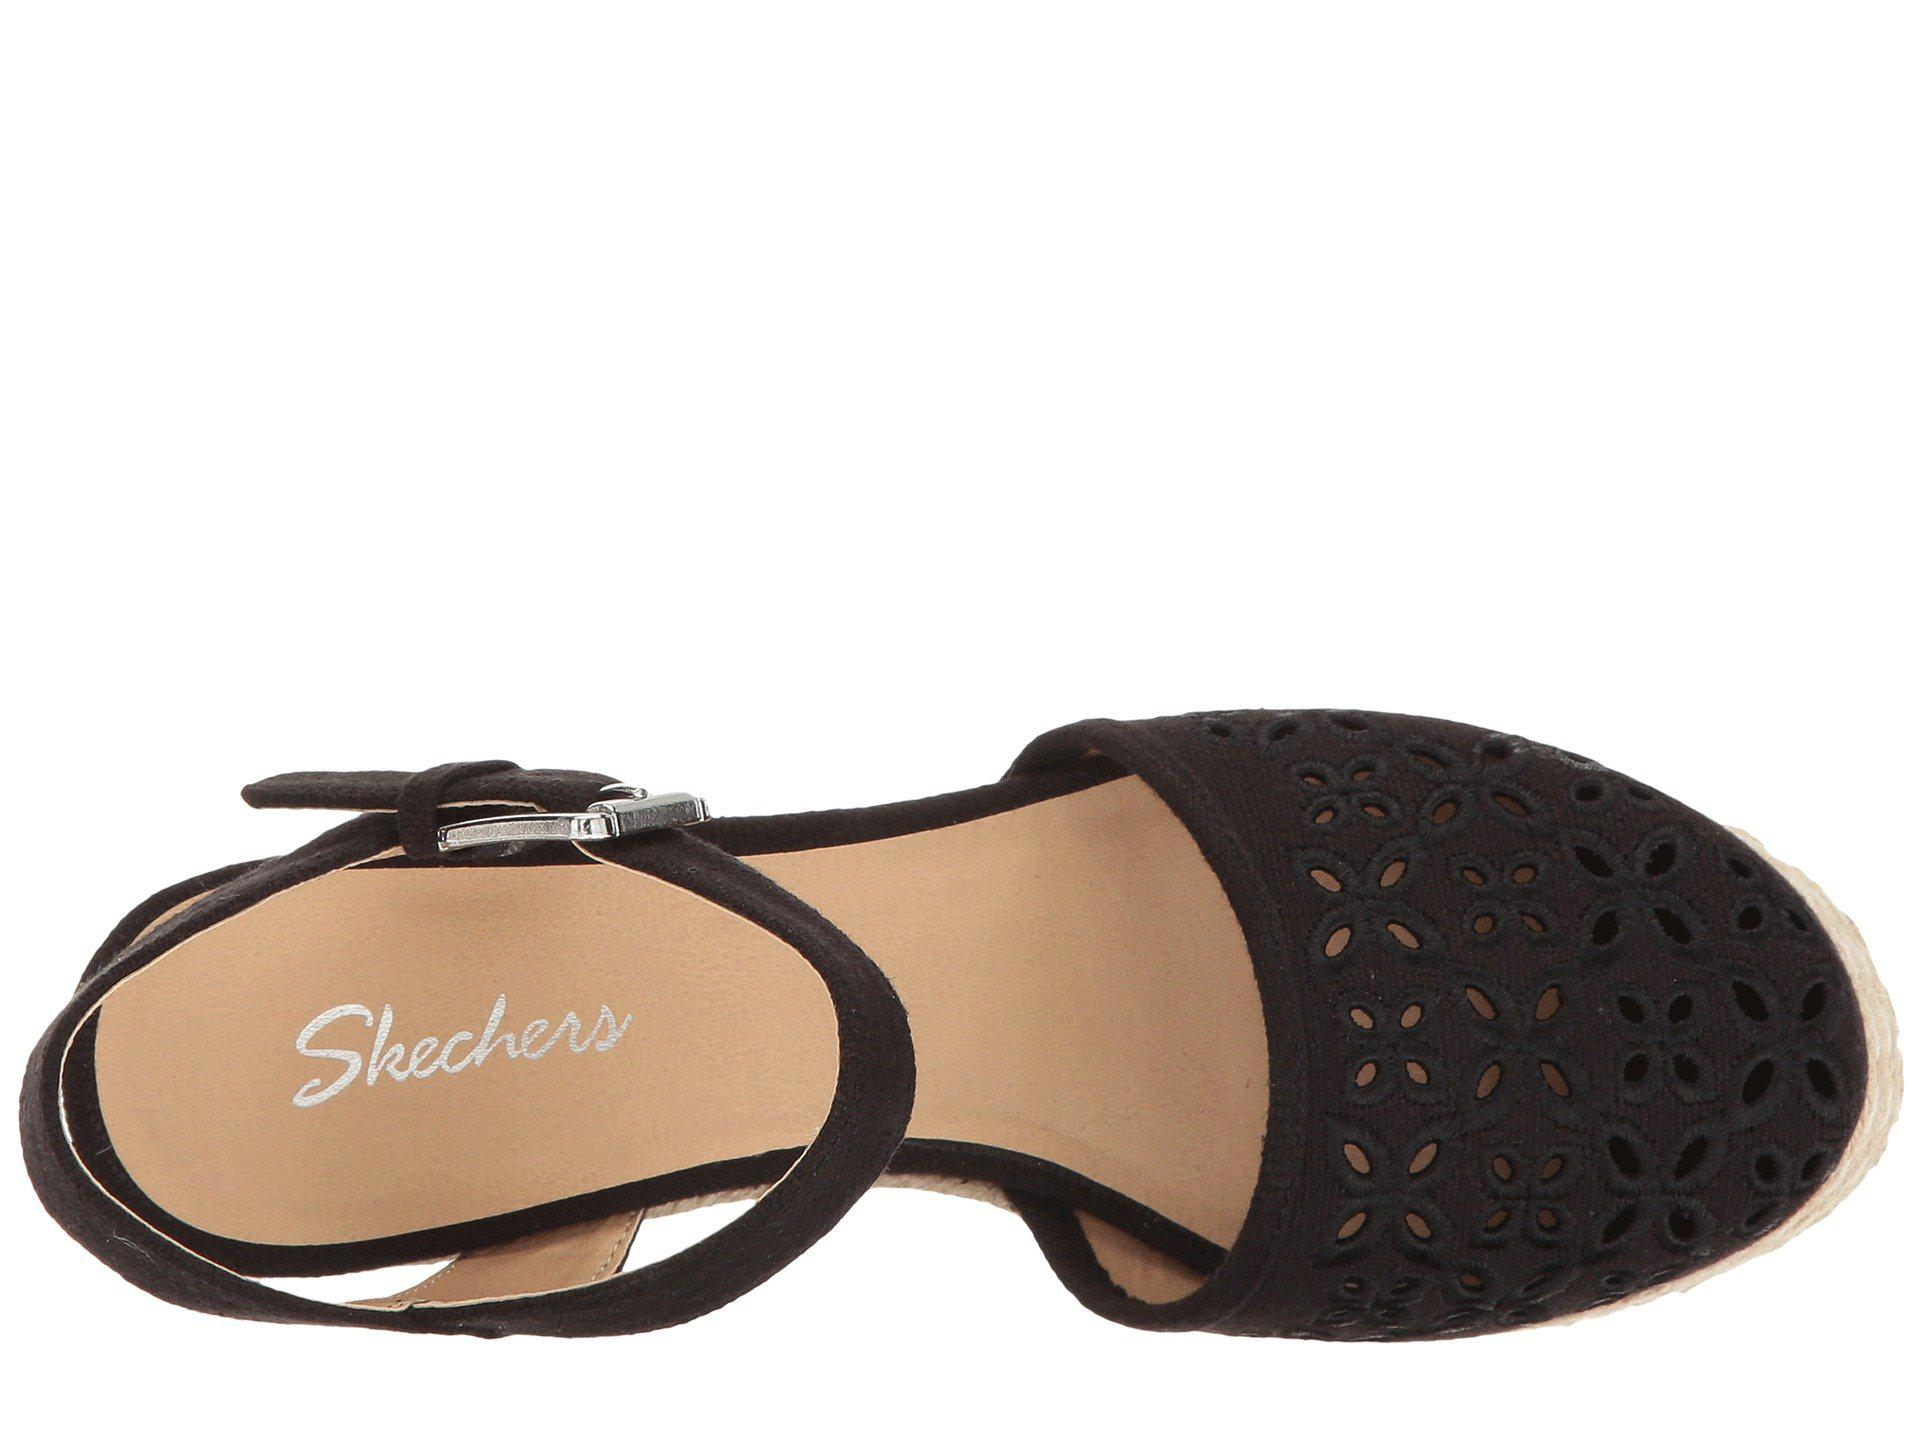 5ab91b52e4d Skechers - Turtledove (black) Women s Wedge Shoes - Lyst. View fullscreen